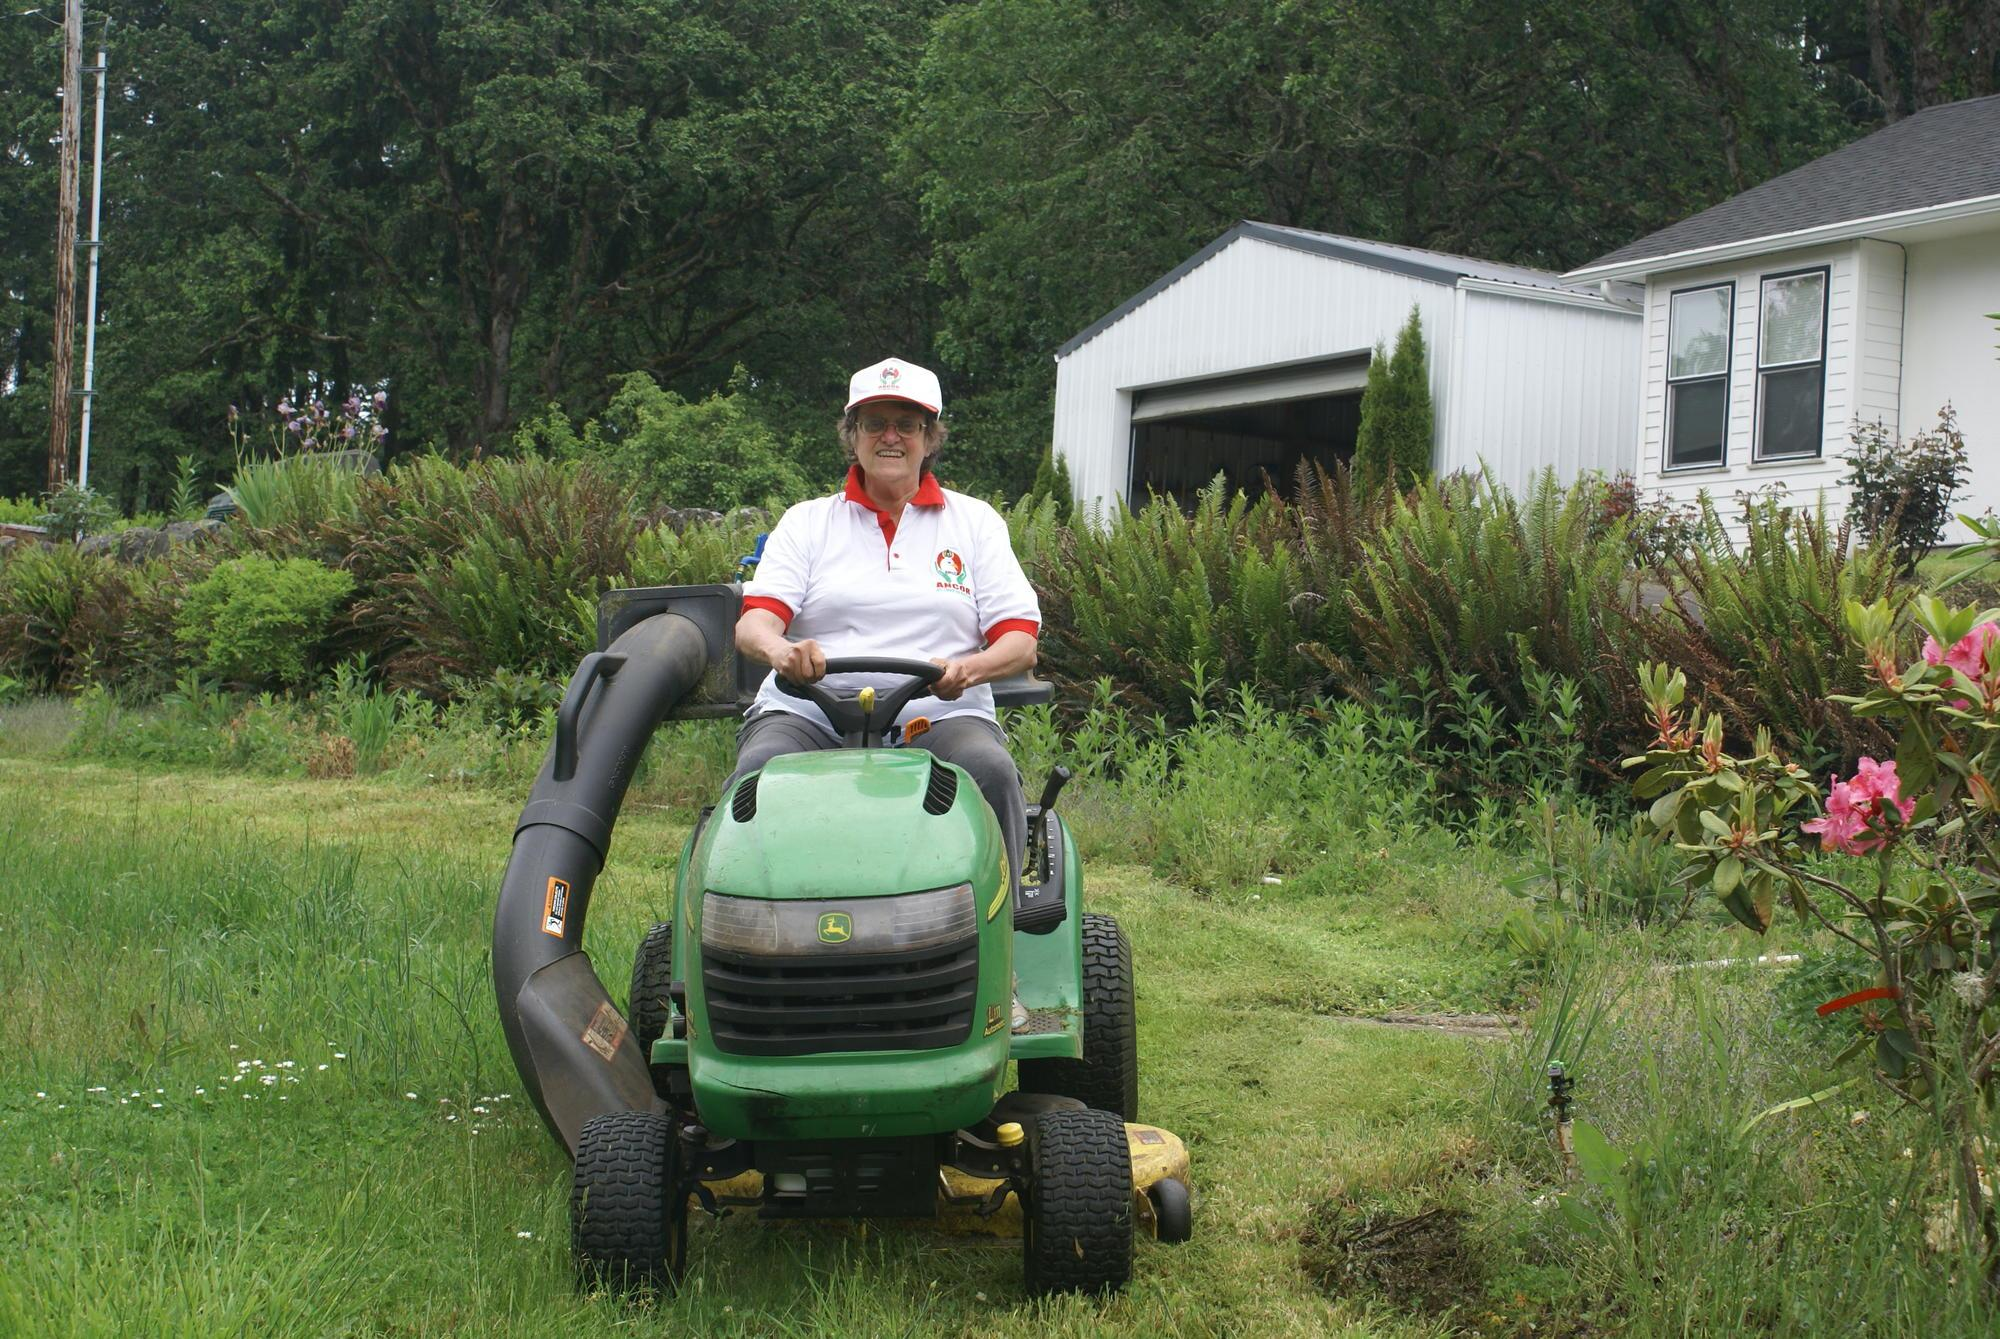 Woman wearing a ballcap riding a lawn tractor.